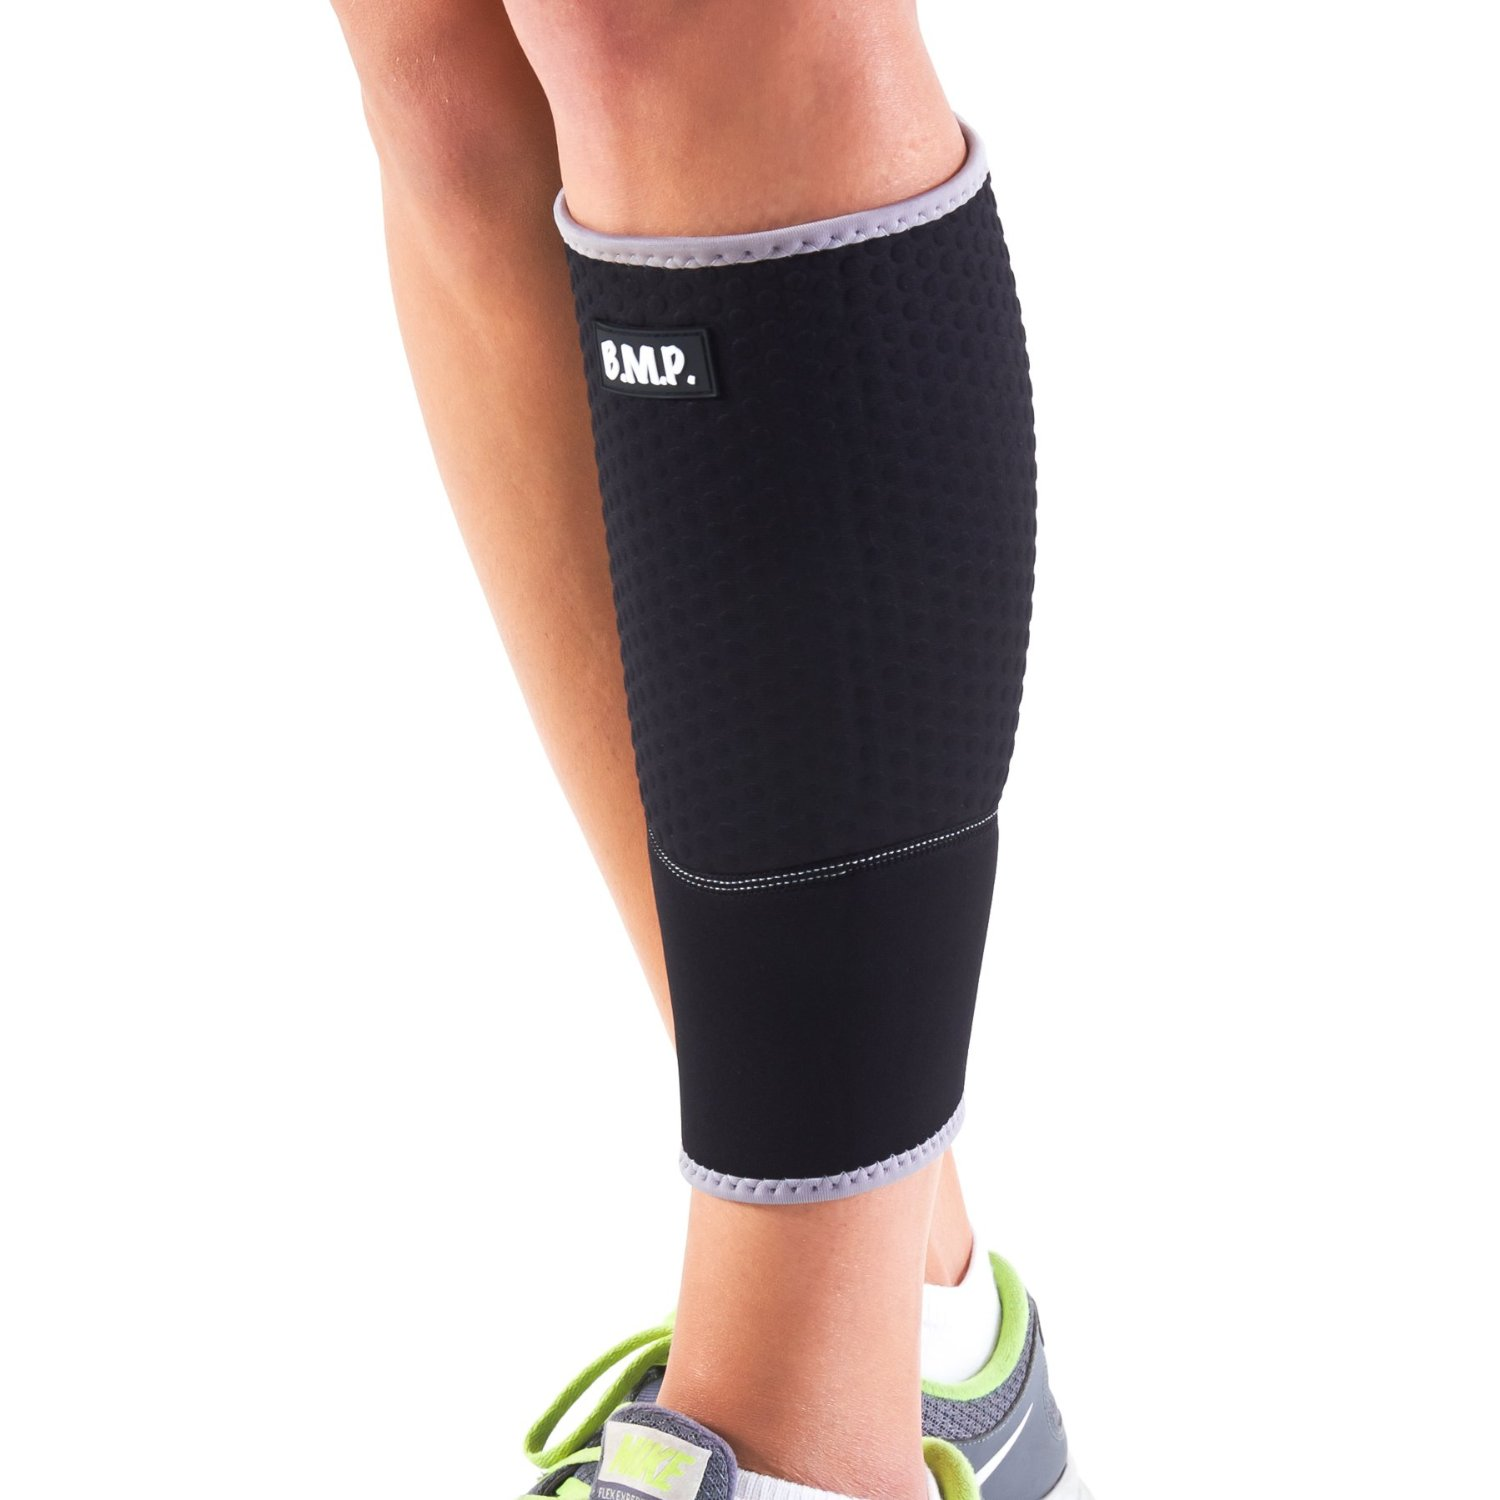 lightweight and breathable black calf brace compression sleeve black mountain products. Black Bedroom Furniture Sets. Home Design Ideas